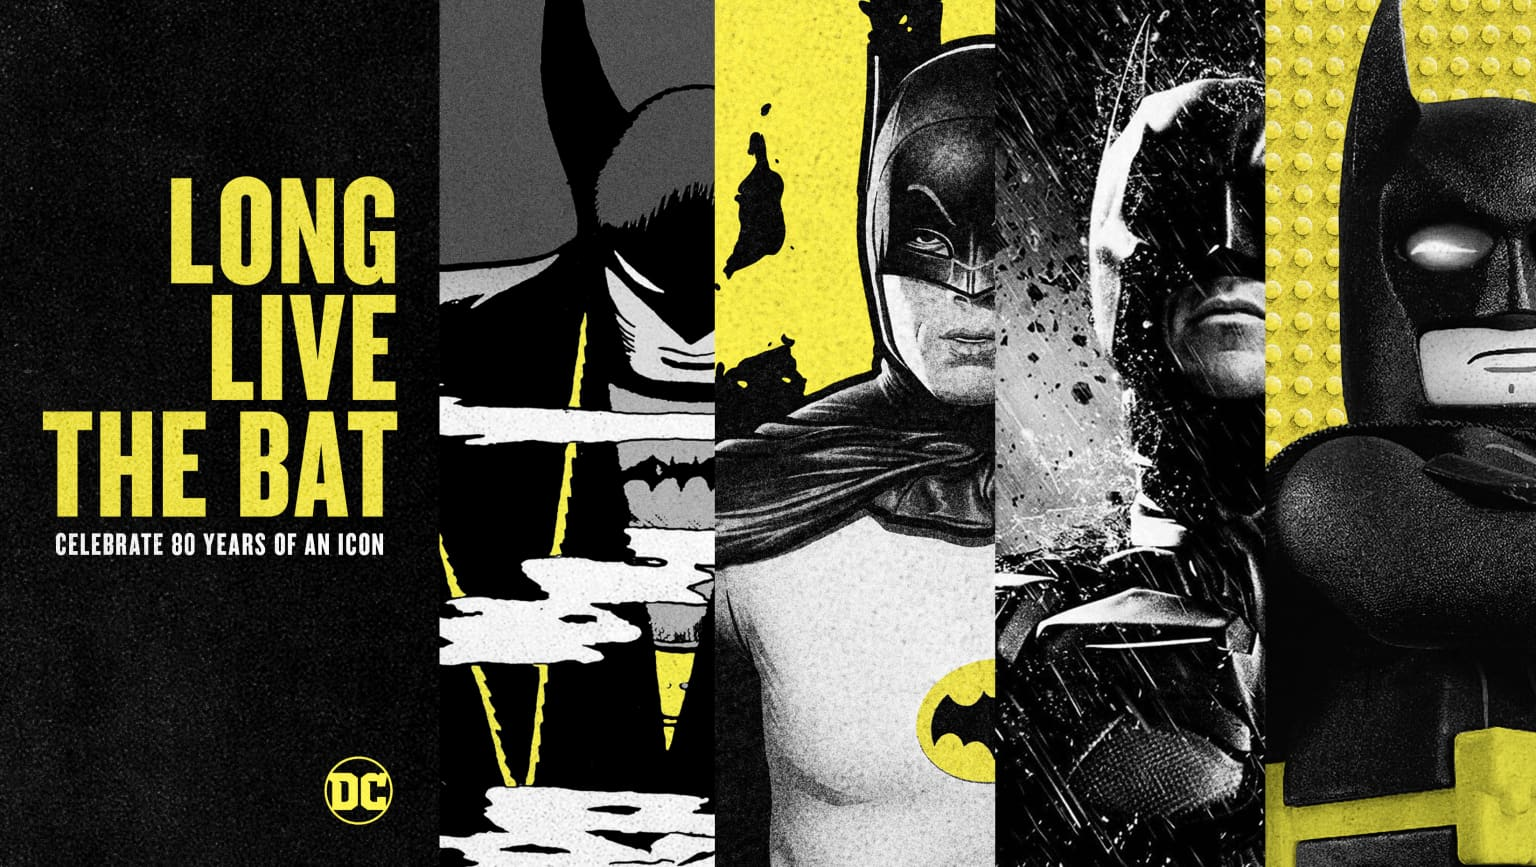 DC Comics. Long Live The Bat.